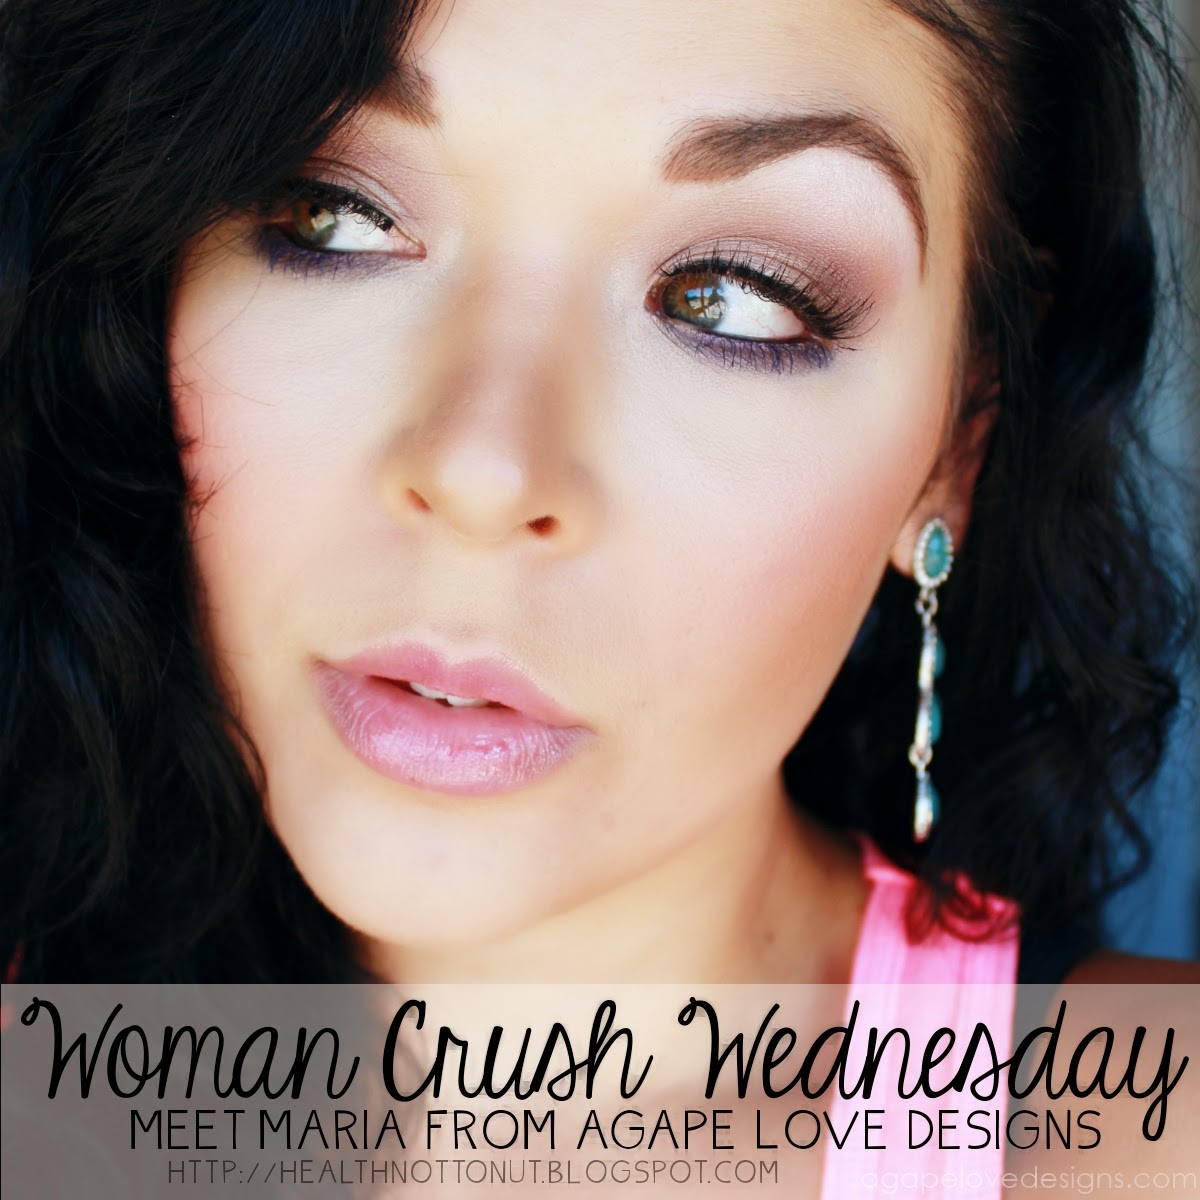 Woman Crush Wednesday: Agape Love Designs